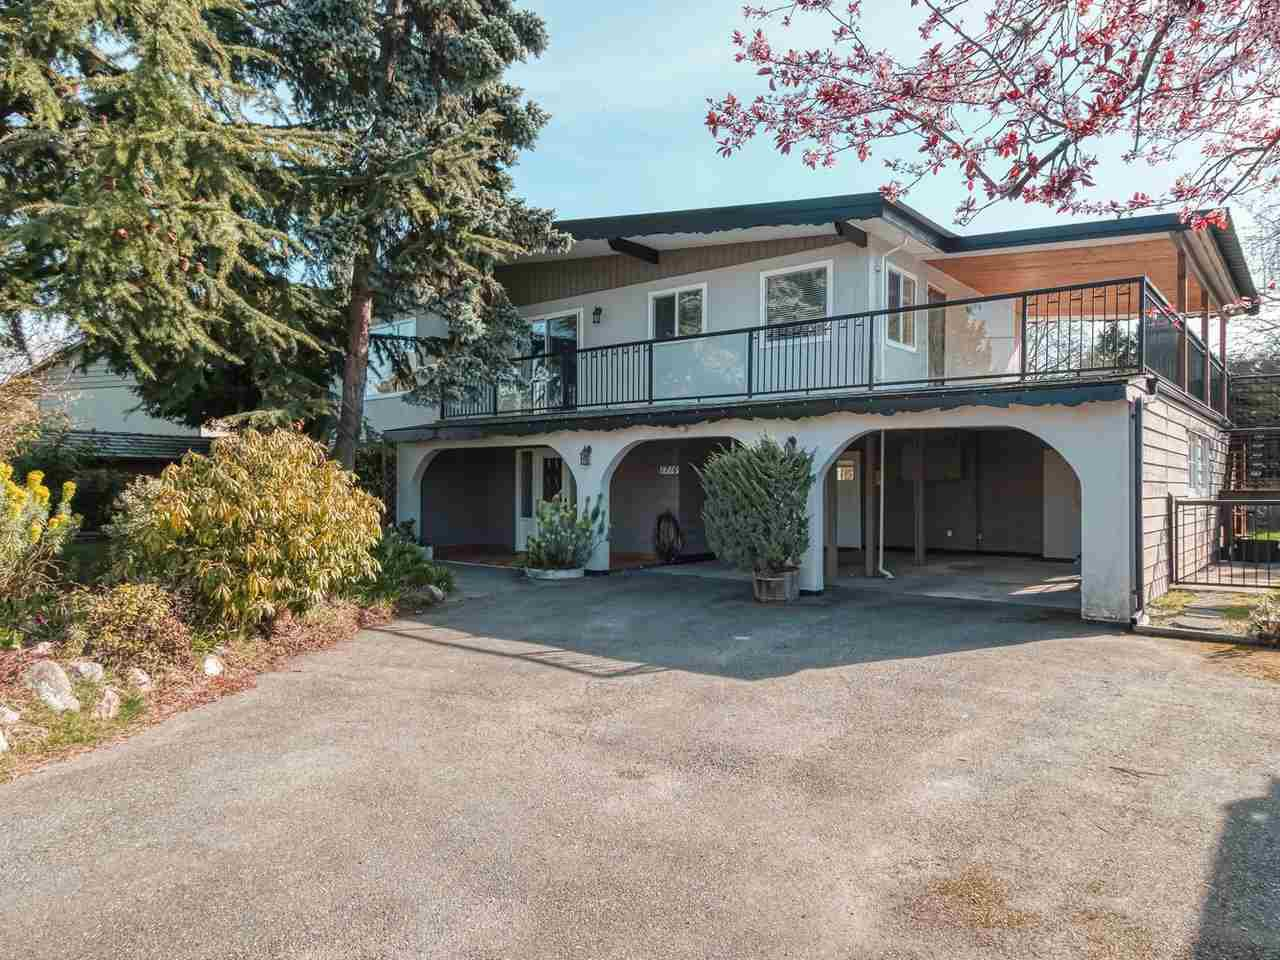 Main Photo: 1716 58 Street in Delta: Beach Grove House for sale (Tsawwassen)  : MLS®# R2445858